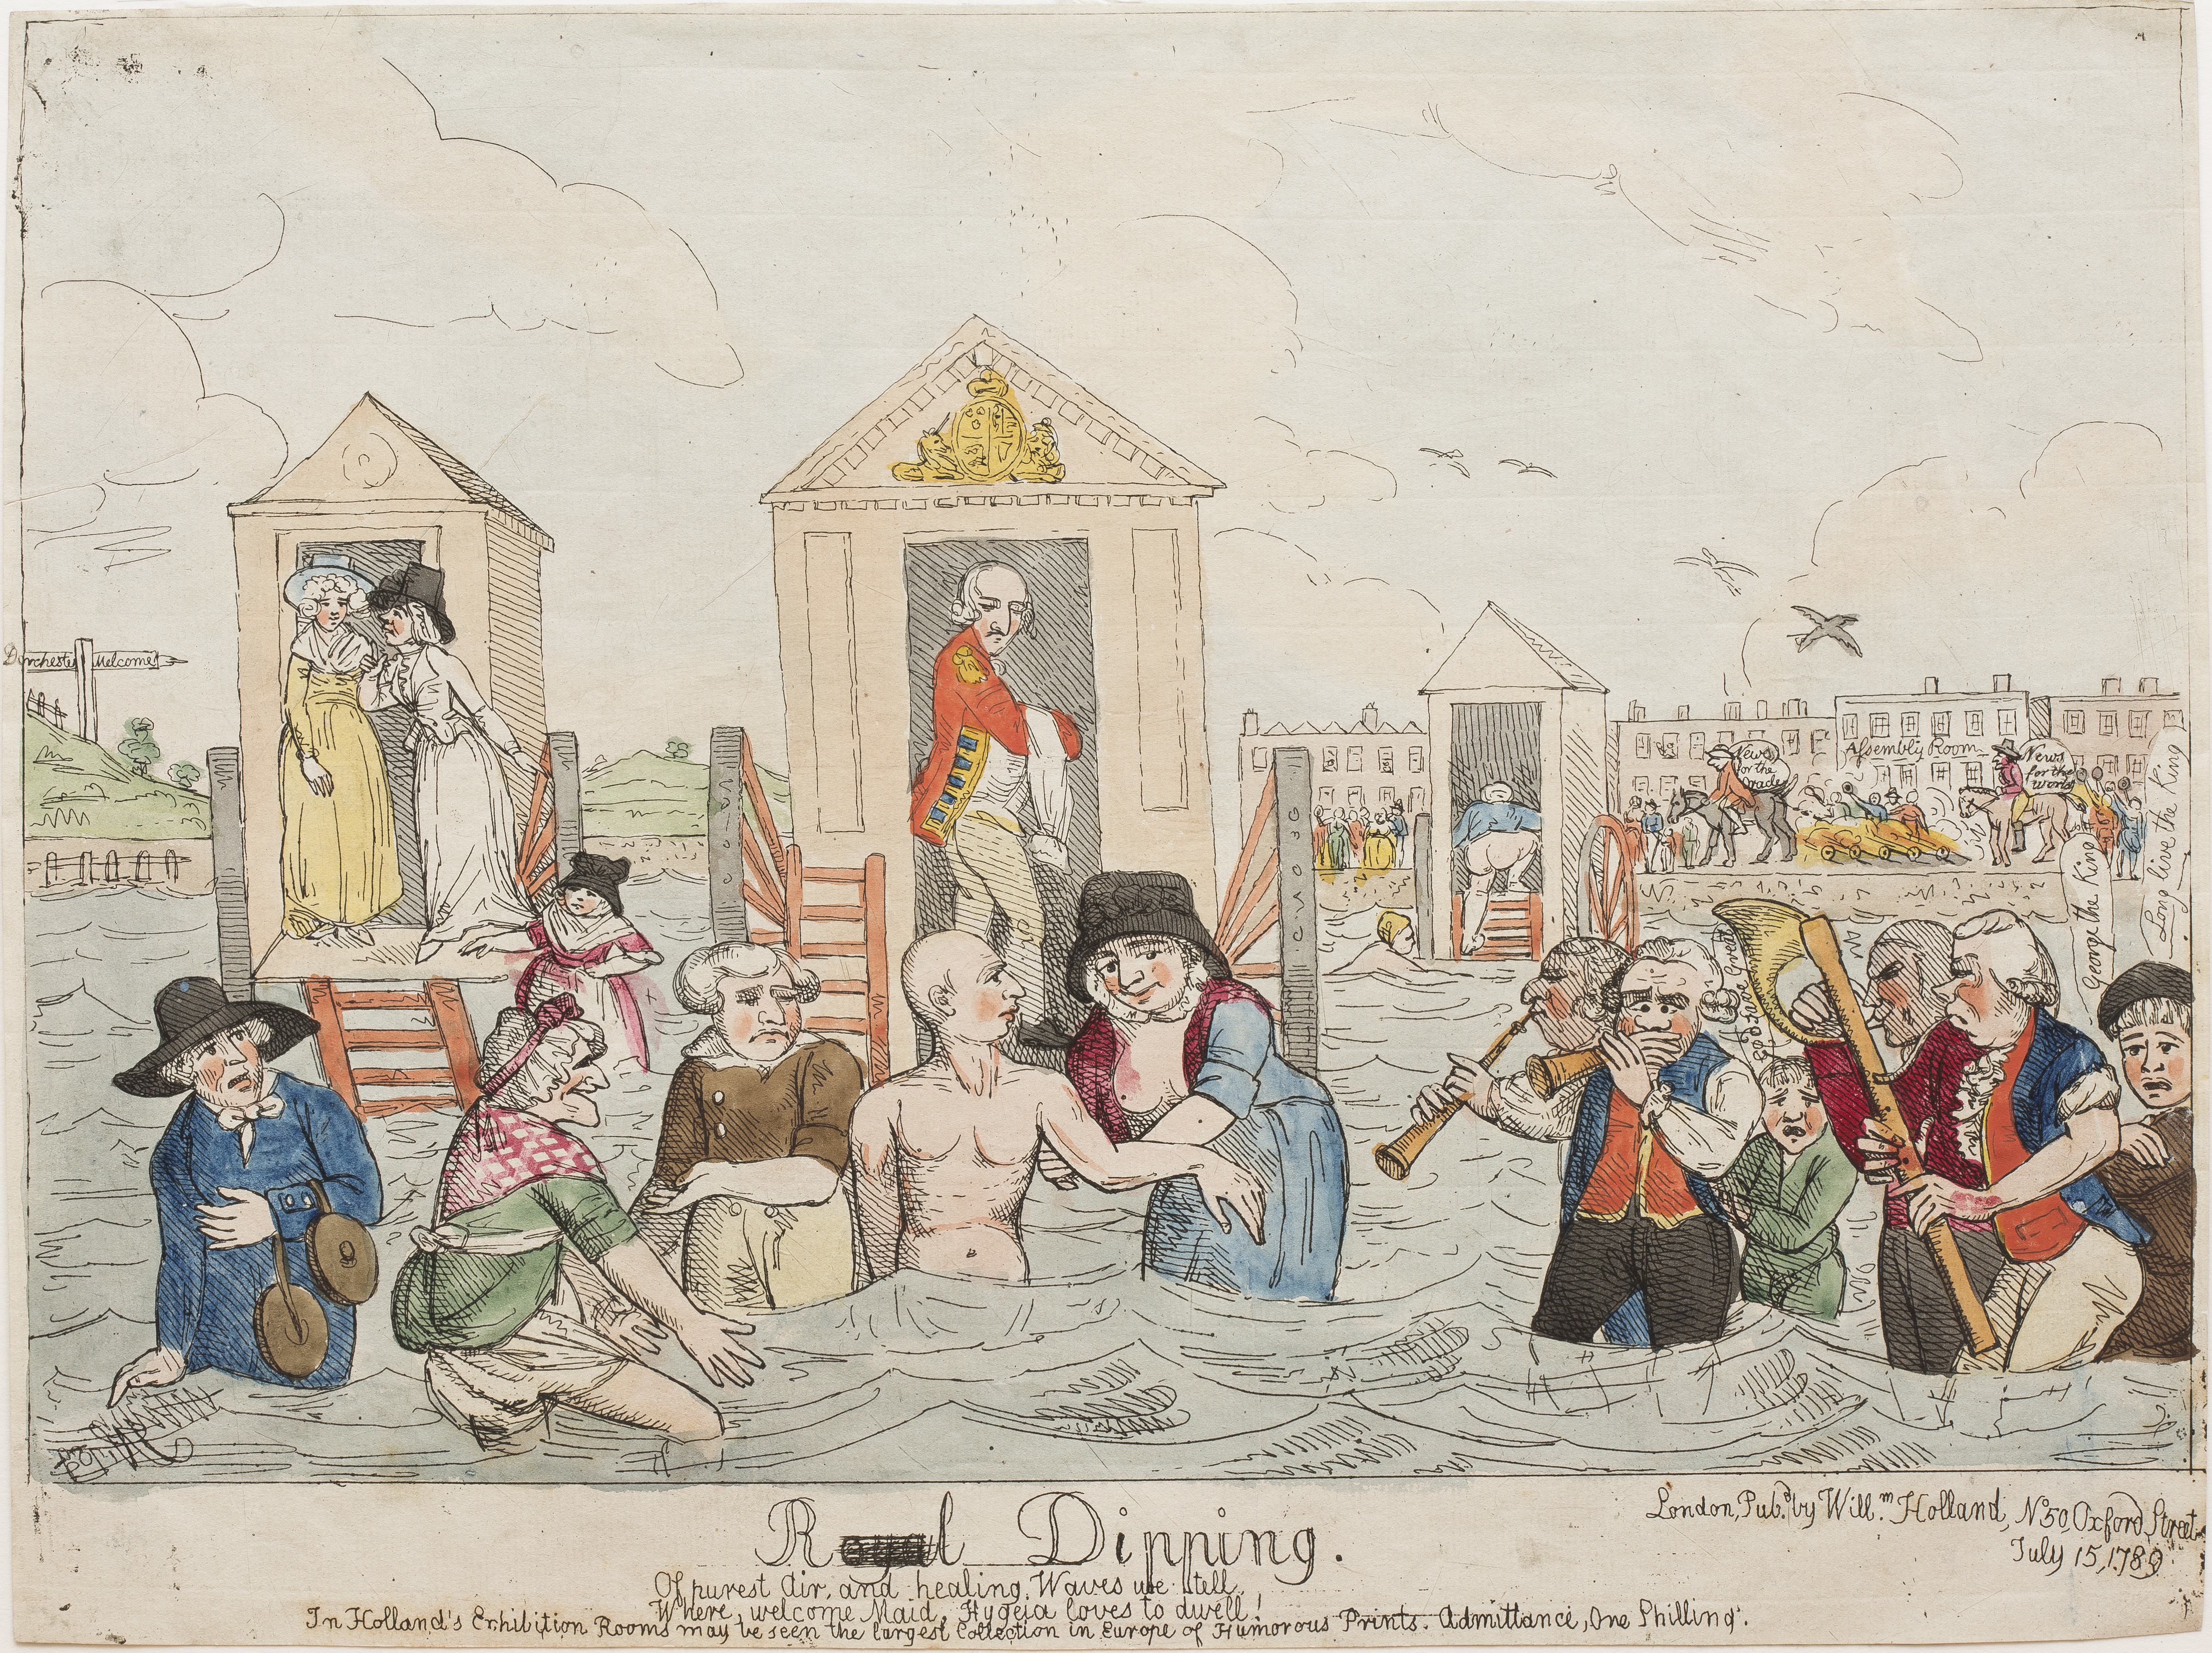 A coloured print of King George standing in water with people around him